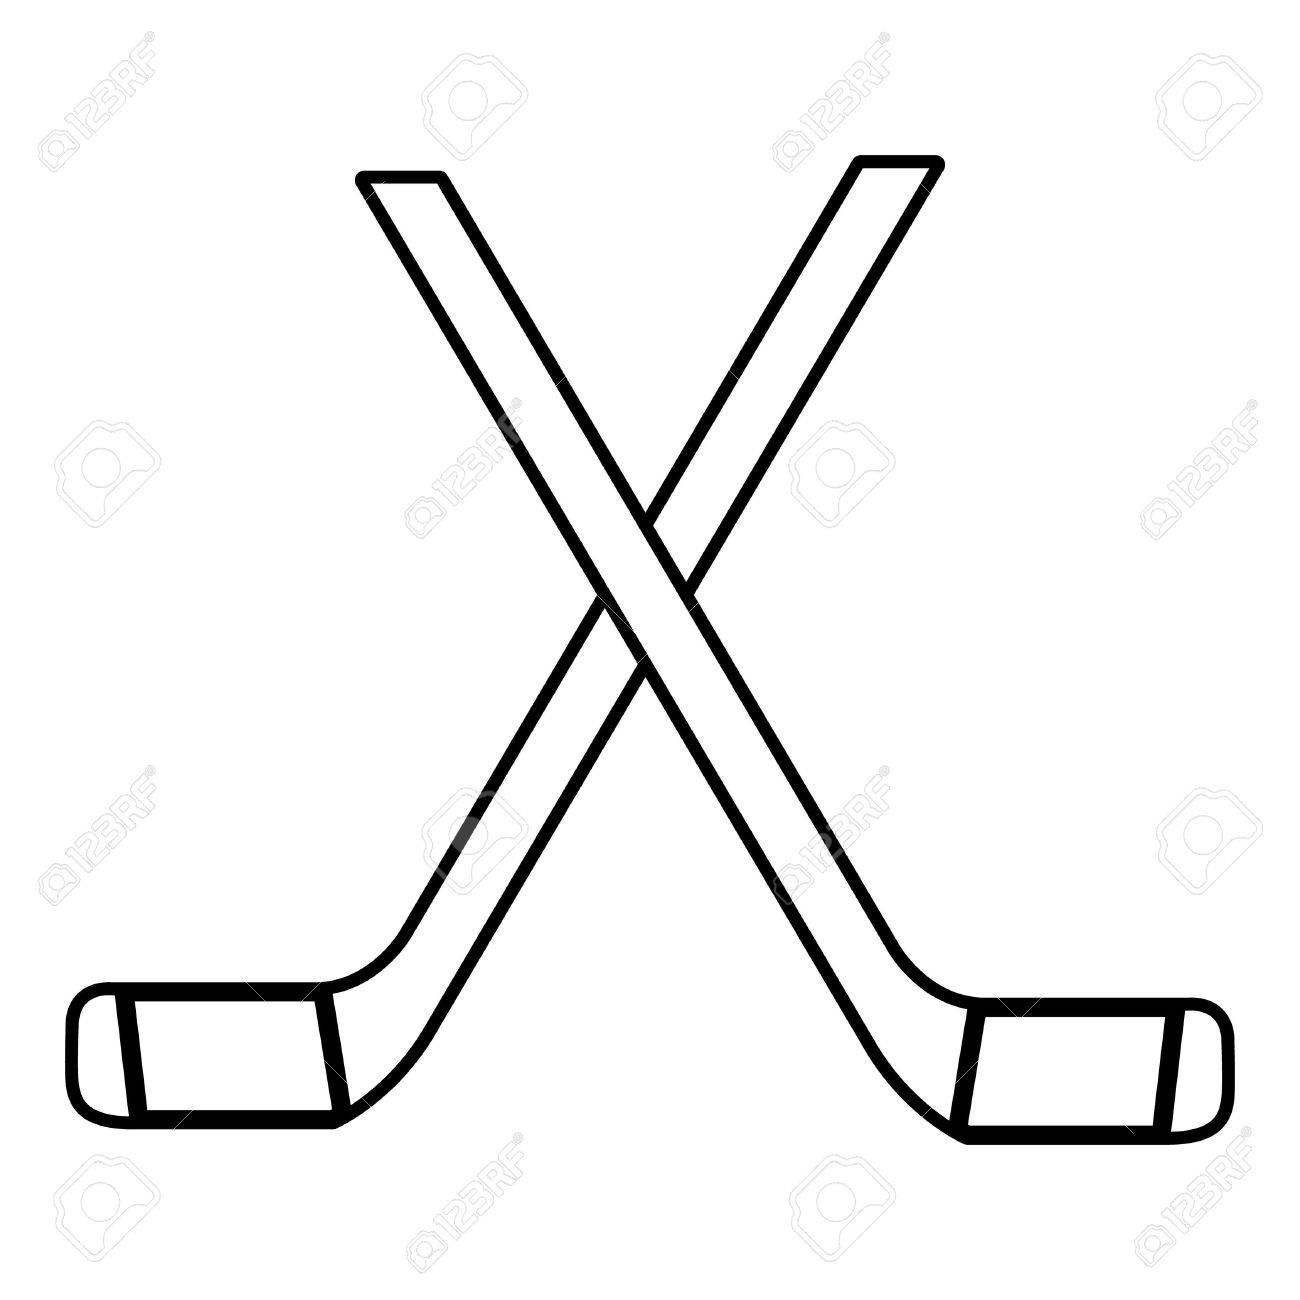 Two crossed hockey sticks icon , outline style.